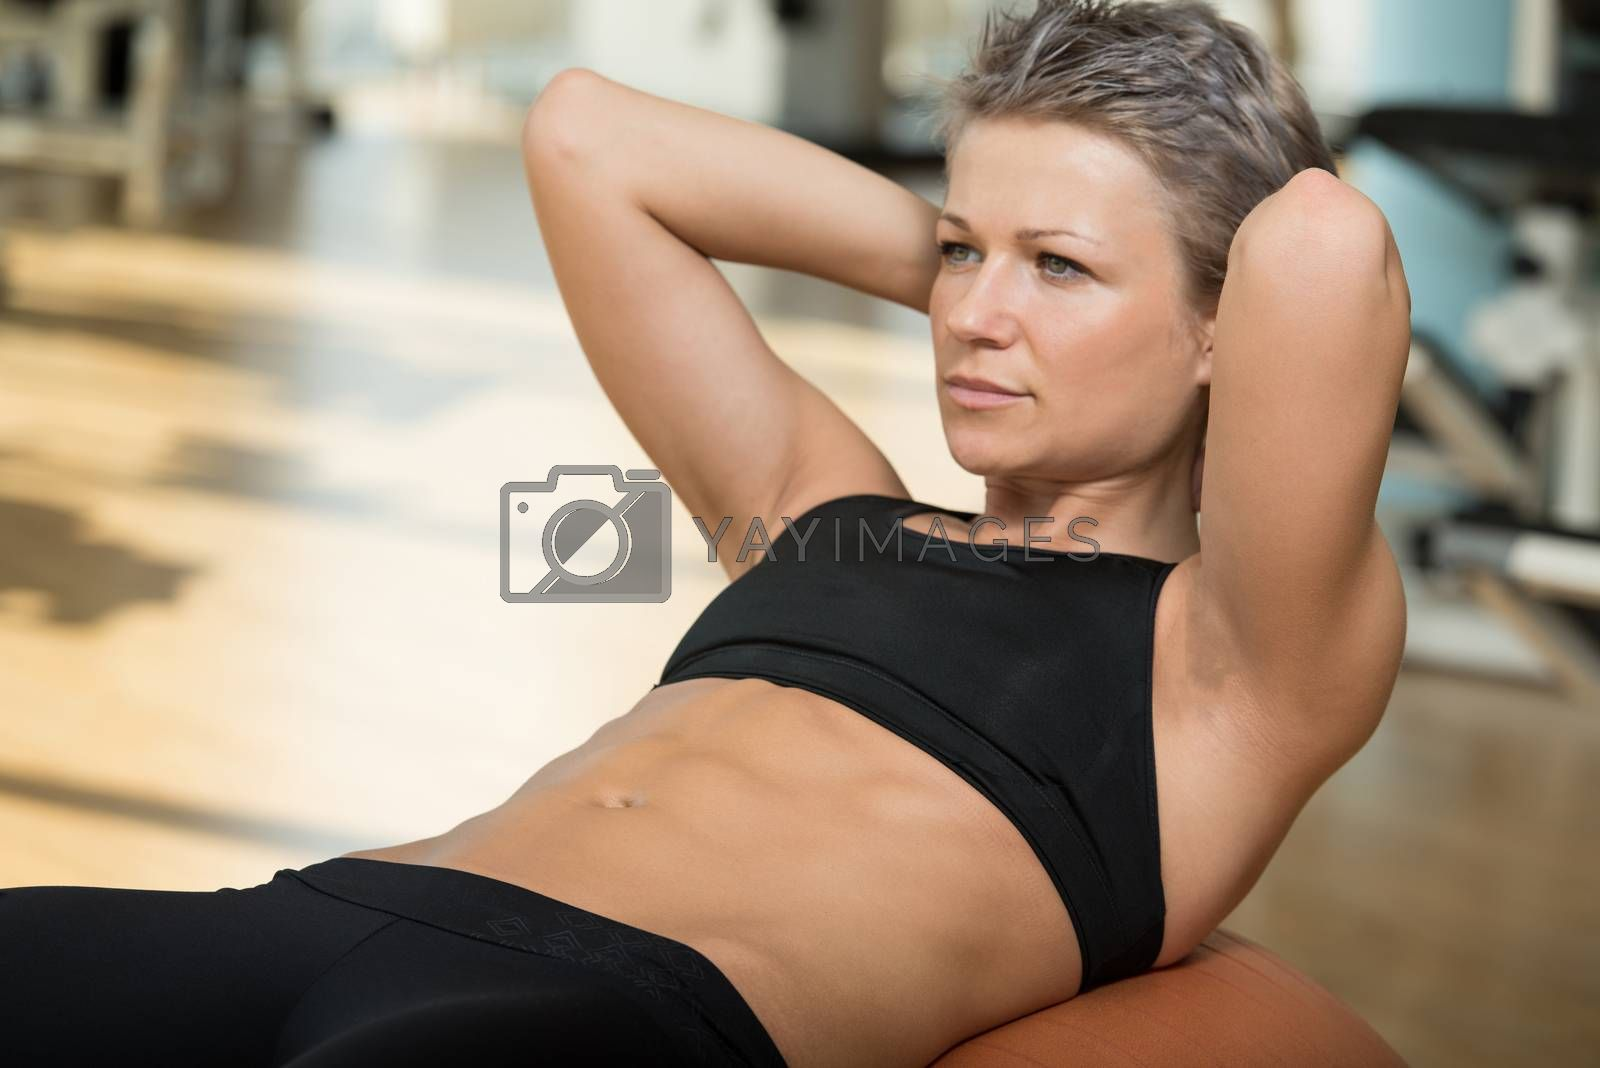 Royalty free image of Attractive Woman Doing Sit-Ups With Exercise Ball by JalePhoto